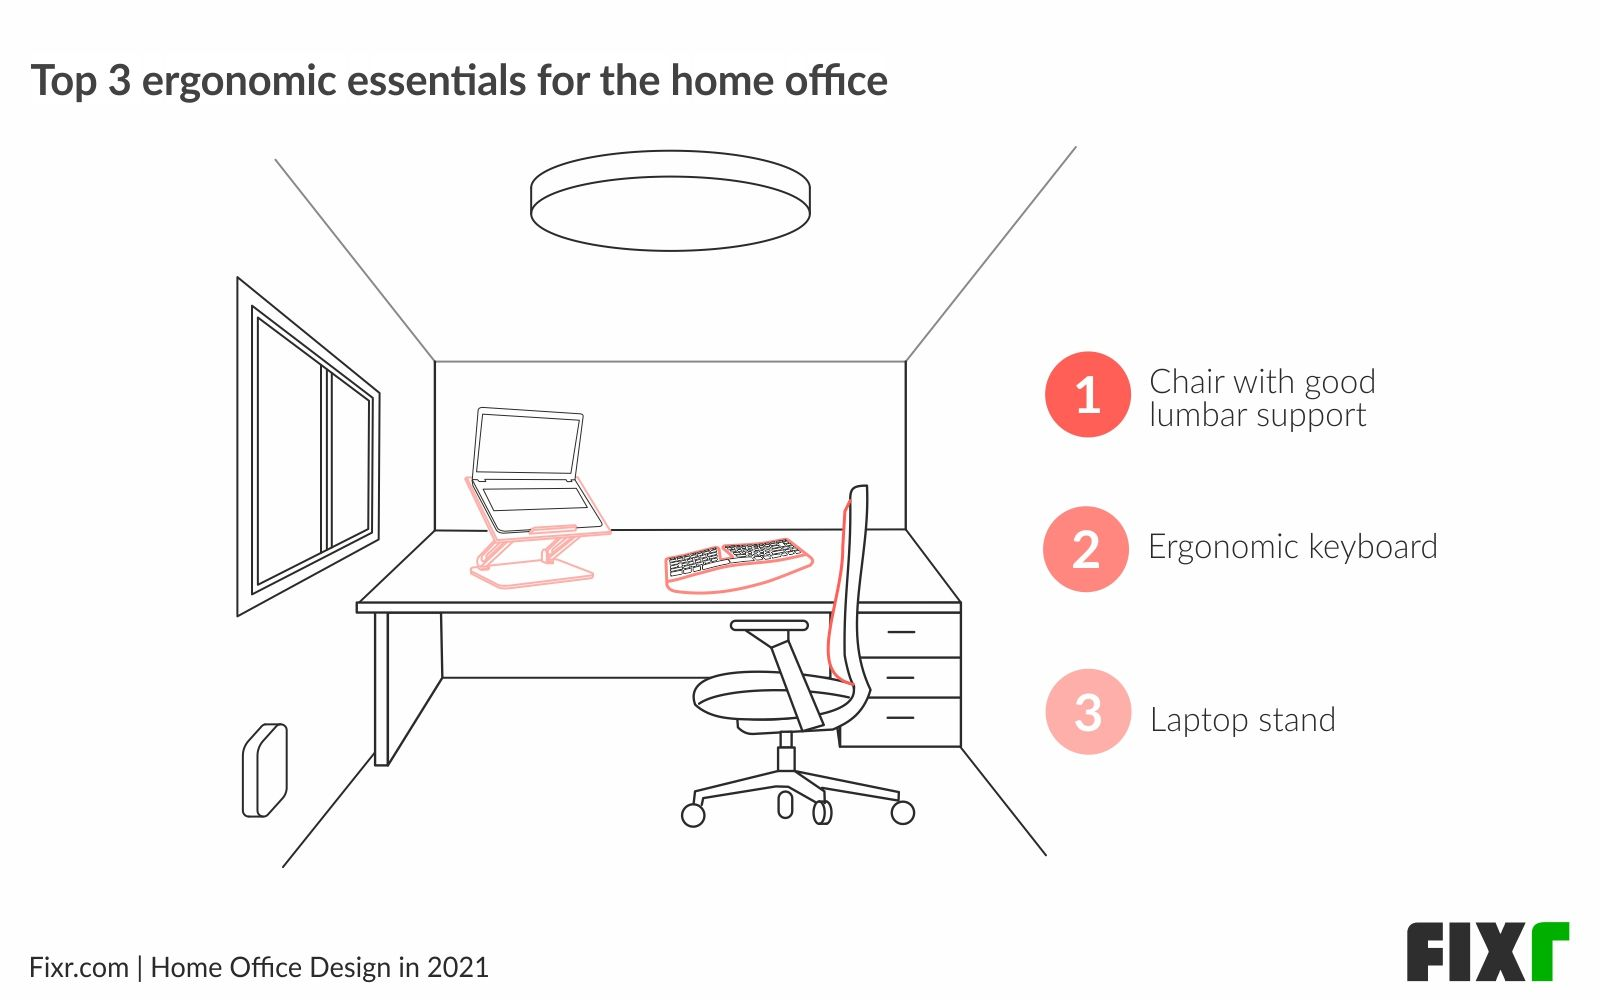 Home Office Design 2021 - Top 3 Ergonomic Essentials for the Home Office